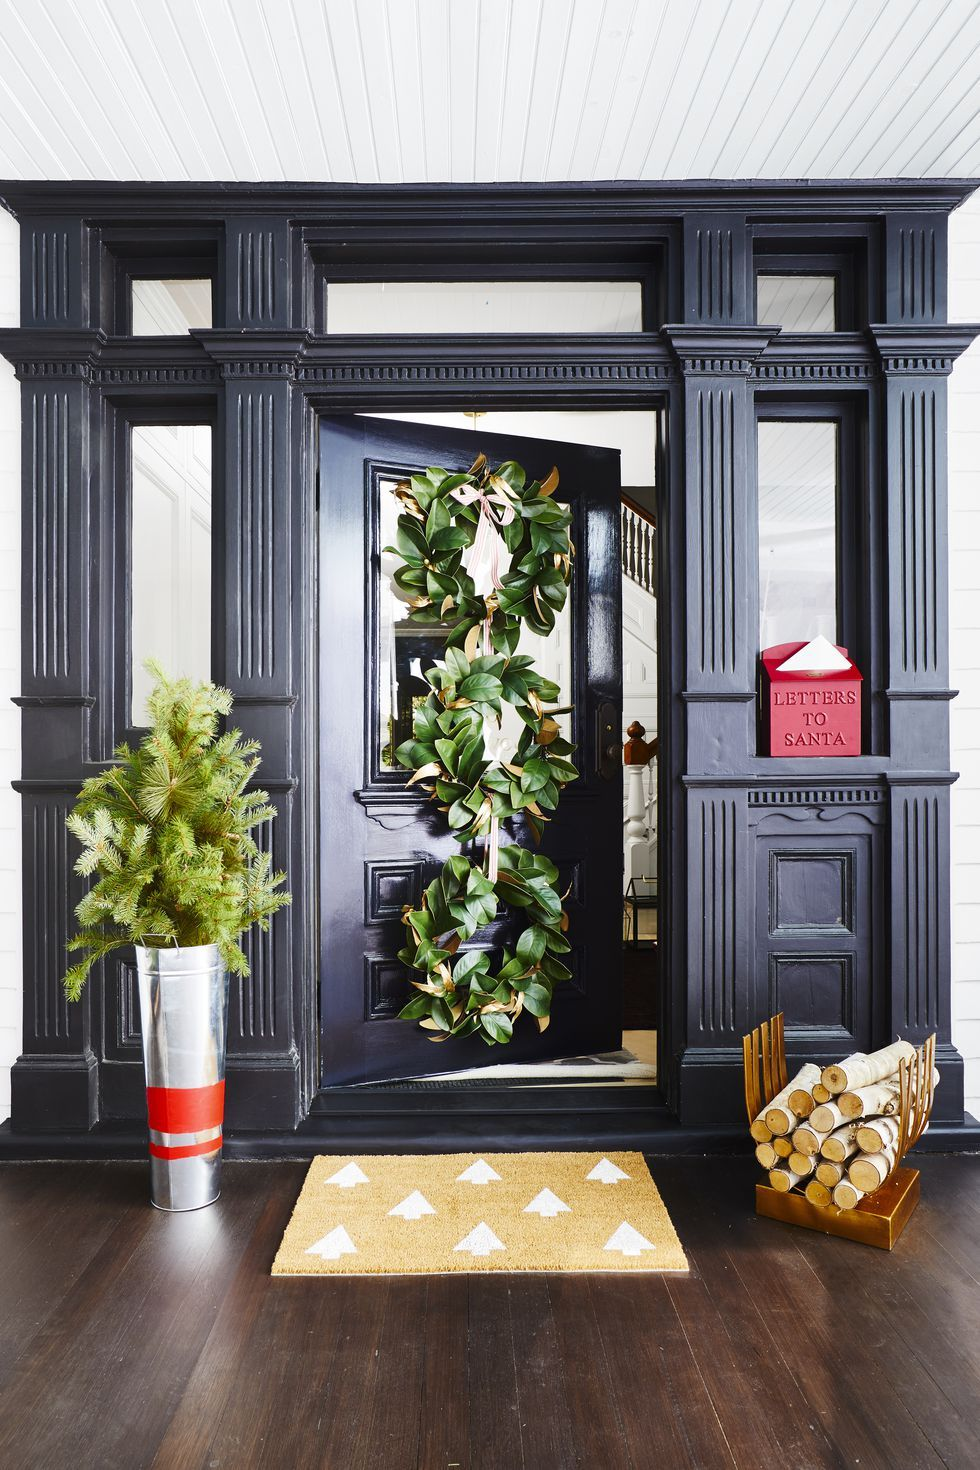 70 Striking Christmas Wreaths To Make Your Front Door As Merry As Can Be Diy Christmas Decorations Easy Easy Christmas Decorations Christmas Door Decorations #wreaths #for #living #room